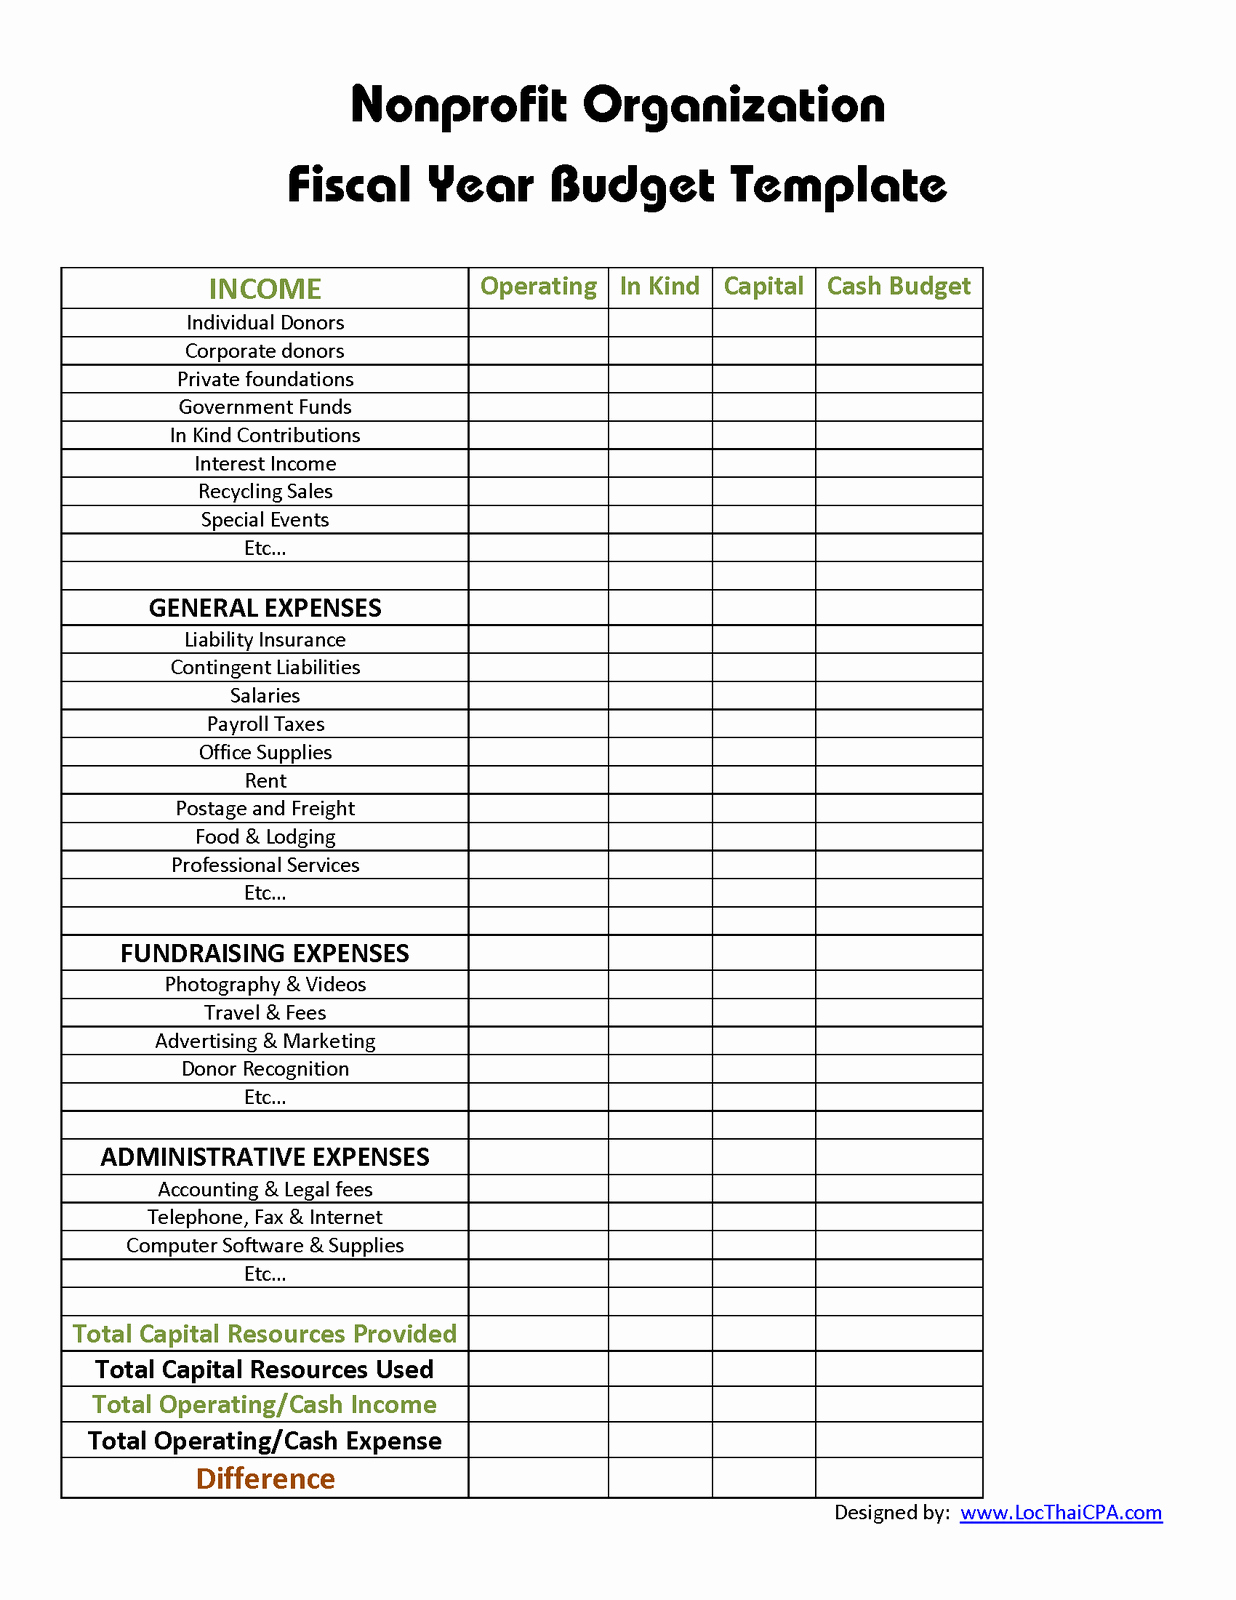 Nonprofit Operating Budget Template Luxury Operating Bud Template Non Profit